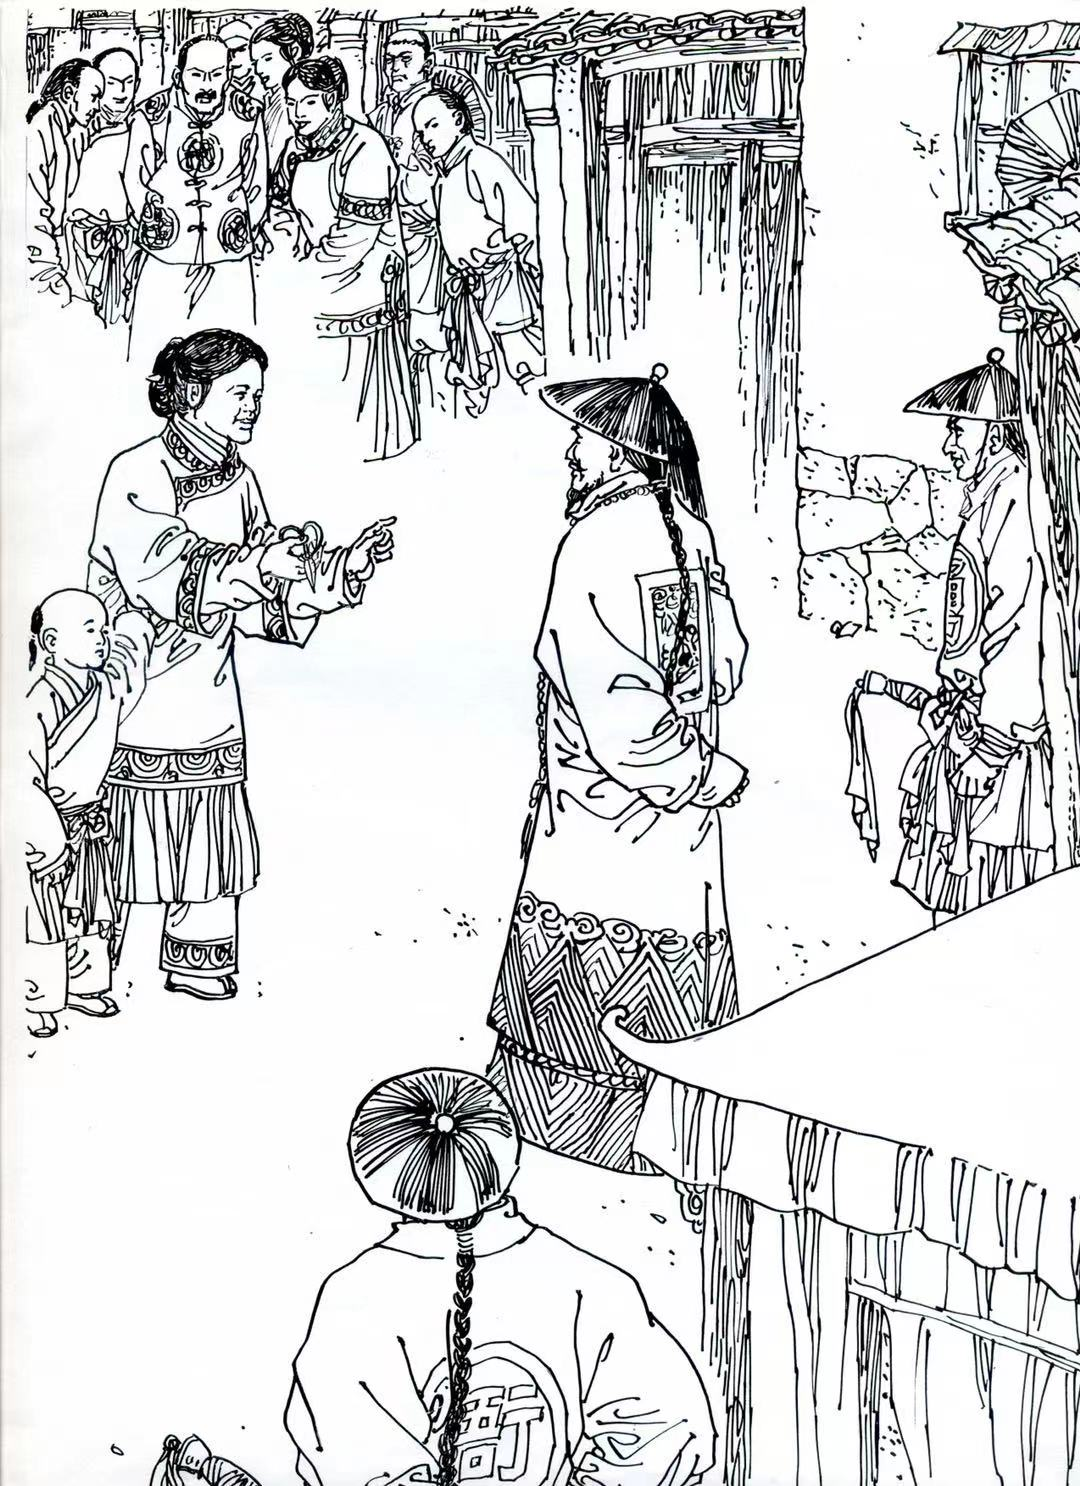 On the fifteenth day of the first lunar month of 1890, Complaints by blocking the sedan chair and permanent prohibition of infringement.